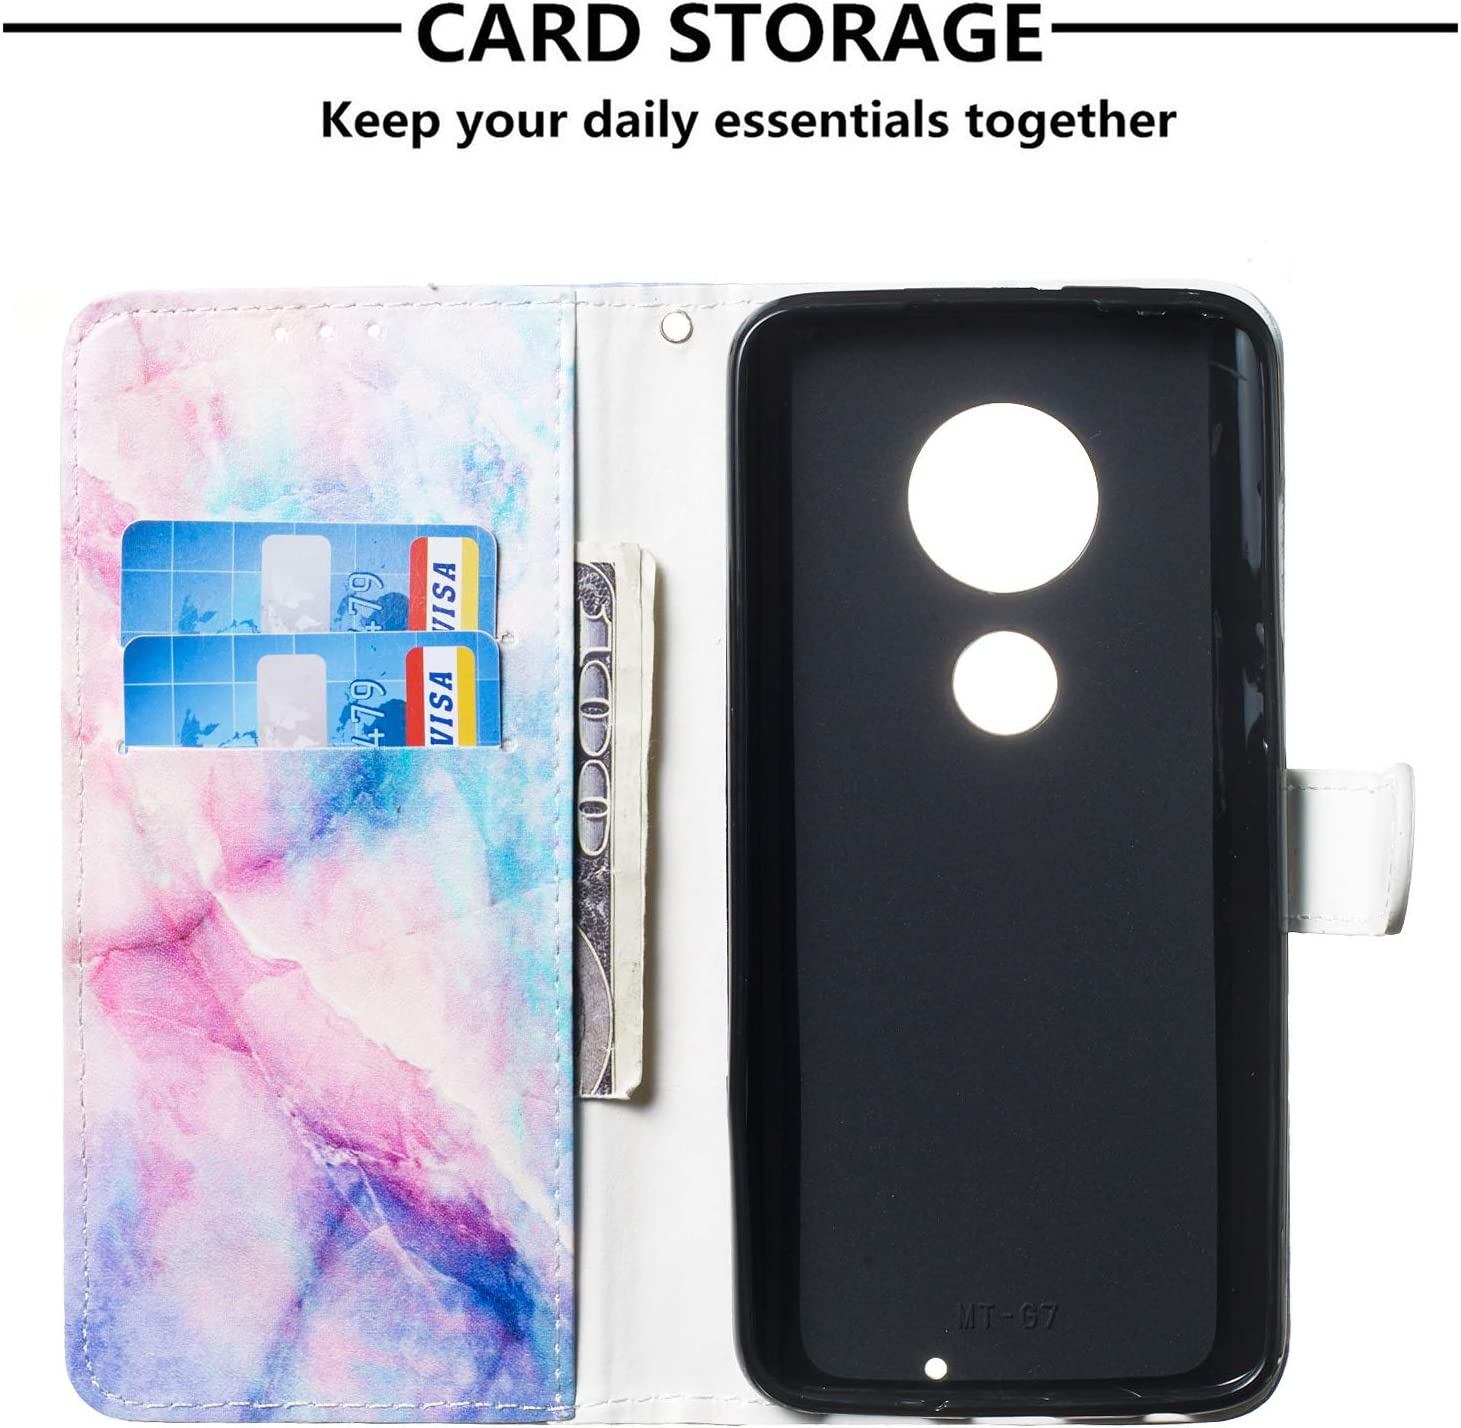 ShinyCase Moto G7 Play PU Leather Case Flip Wallet Book Style Magnetic Closure Holder Folio Stand Function Cover Card Slots Shell Shockproof Protection Bumper for Motorola Moto G7 Play Cartoon Cat